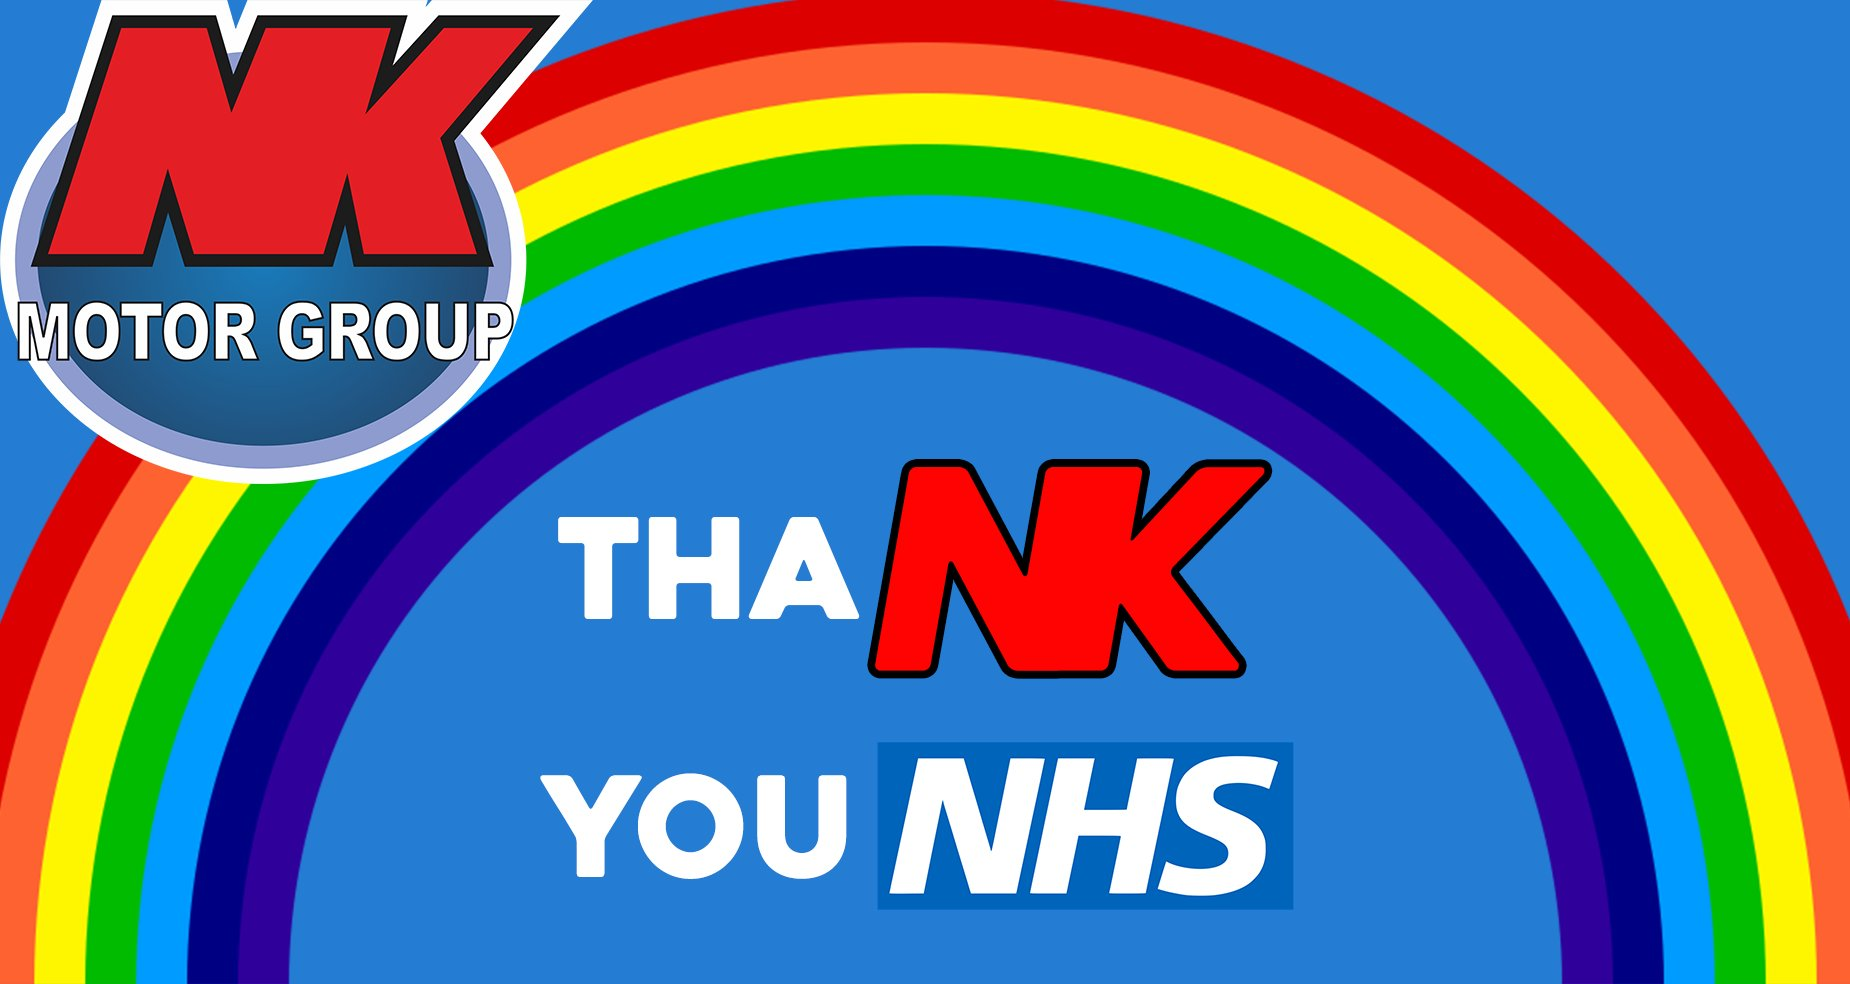 NK Motors says thanks to the NHS